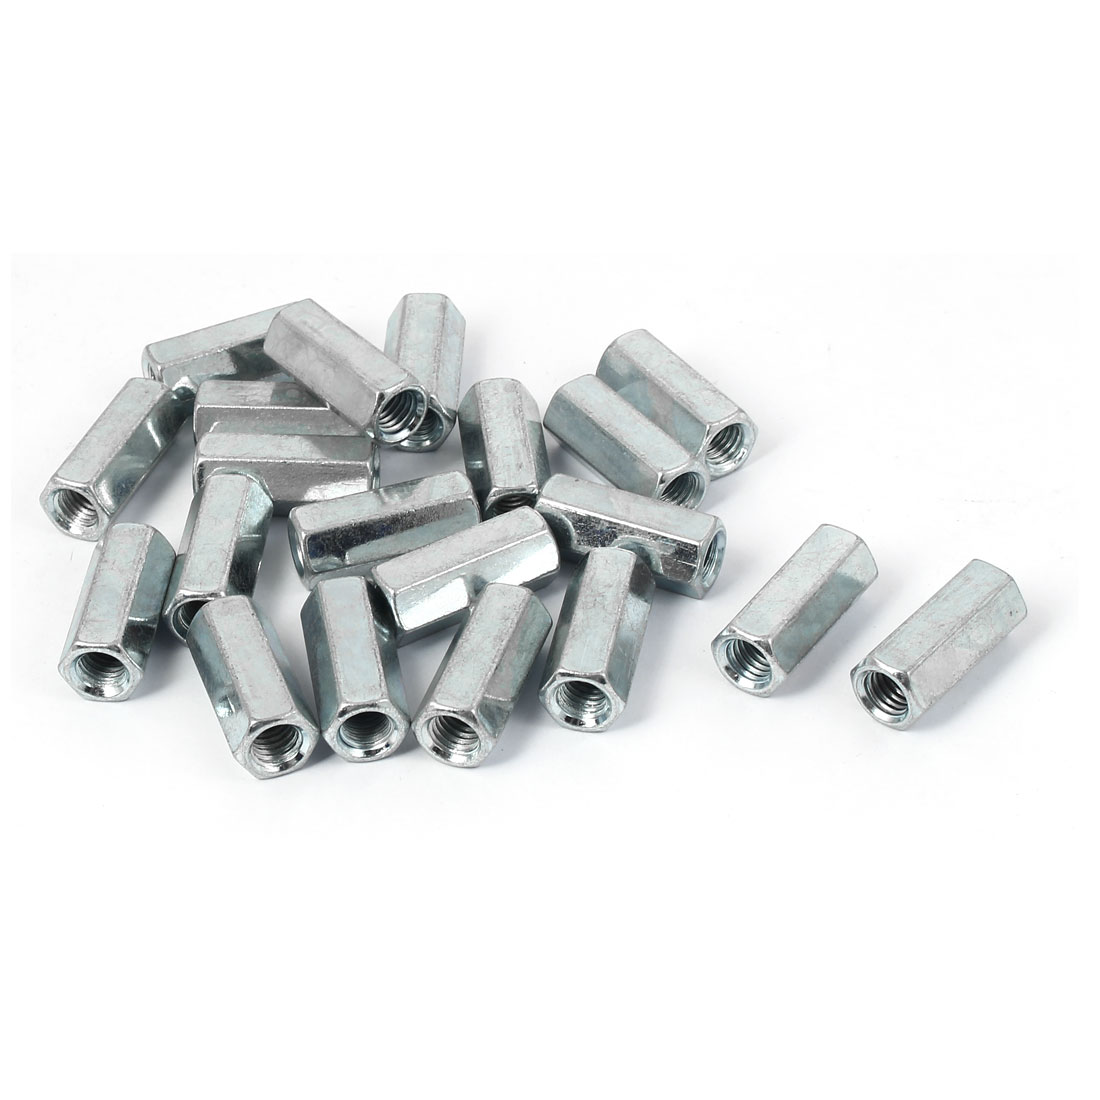 M8 x 13.4mm x 30mm Metal Hex Rod Coupling Connector Nuts Silver Tone 20 Pcs